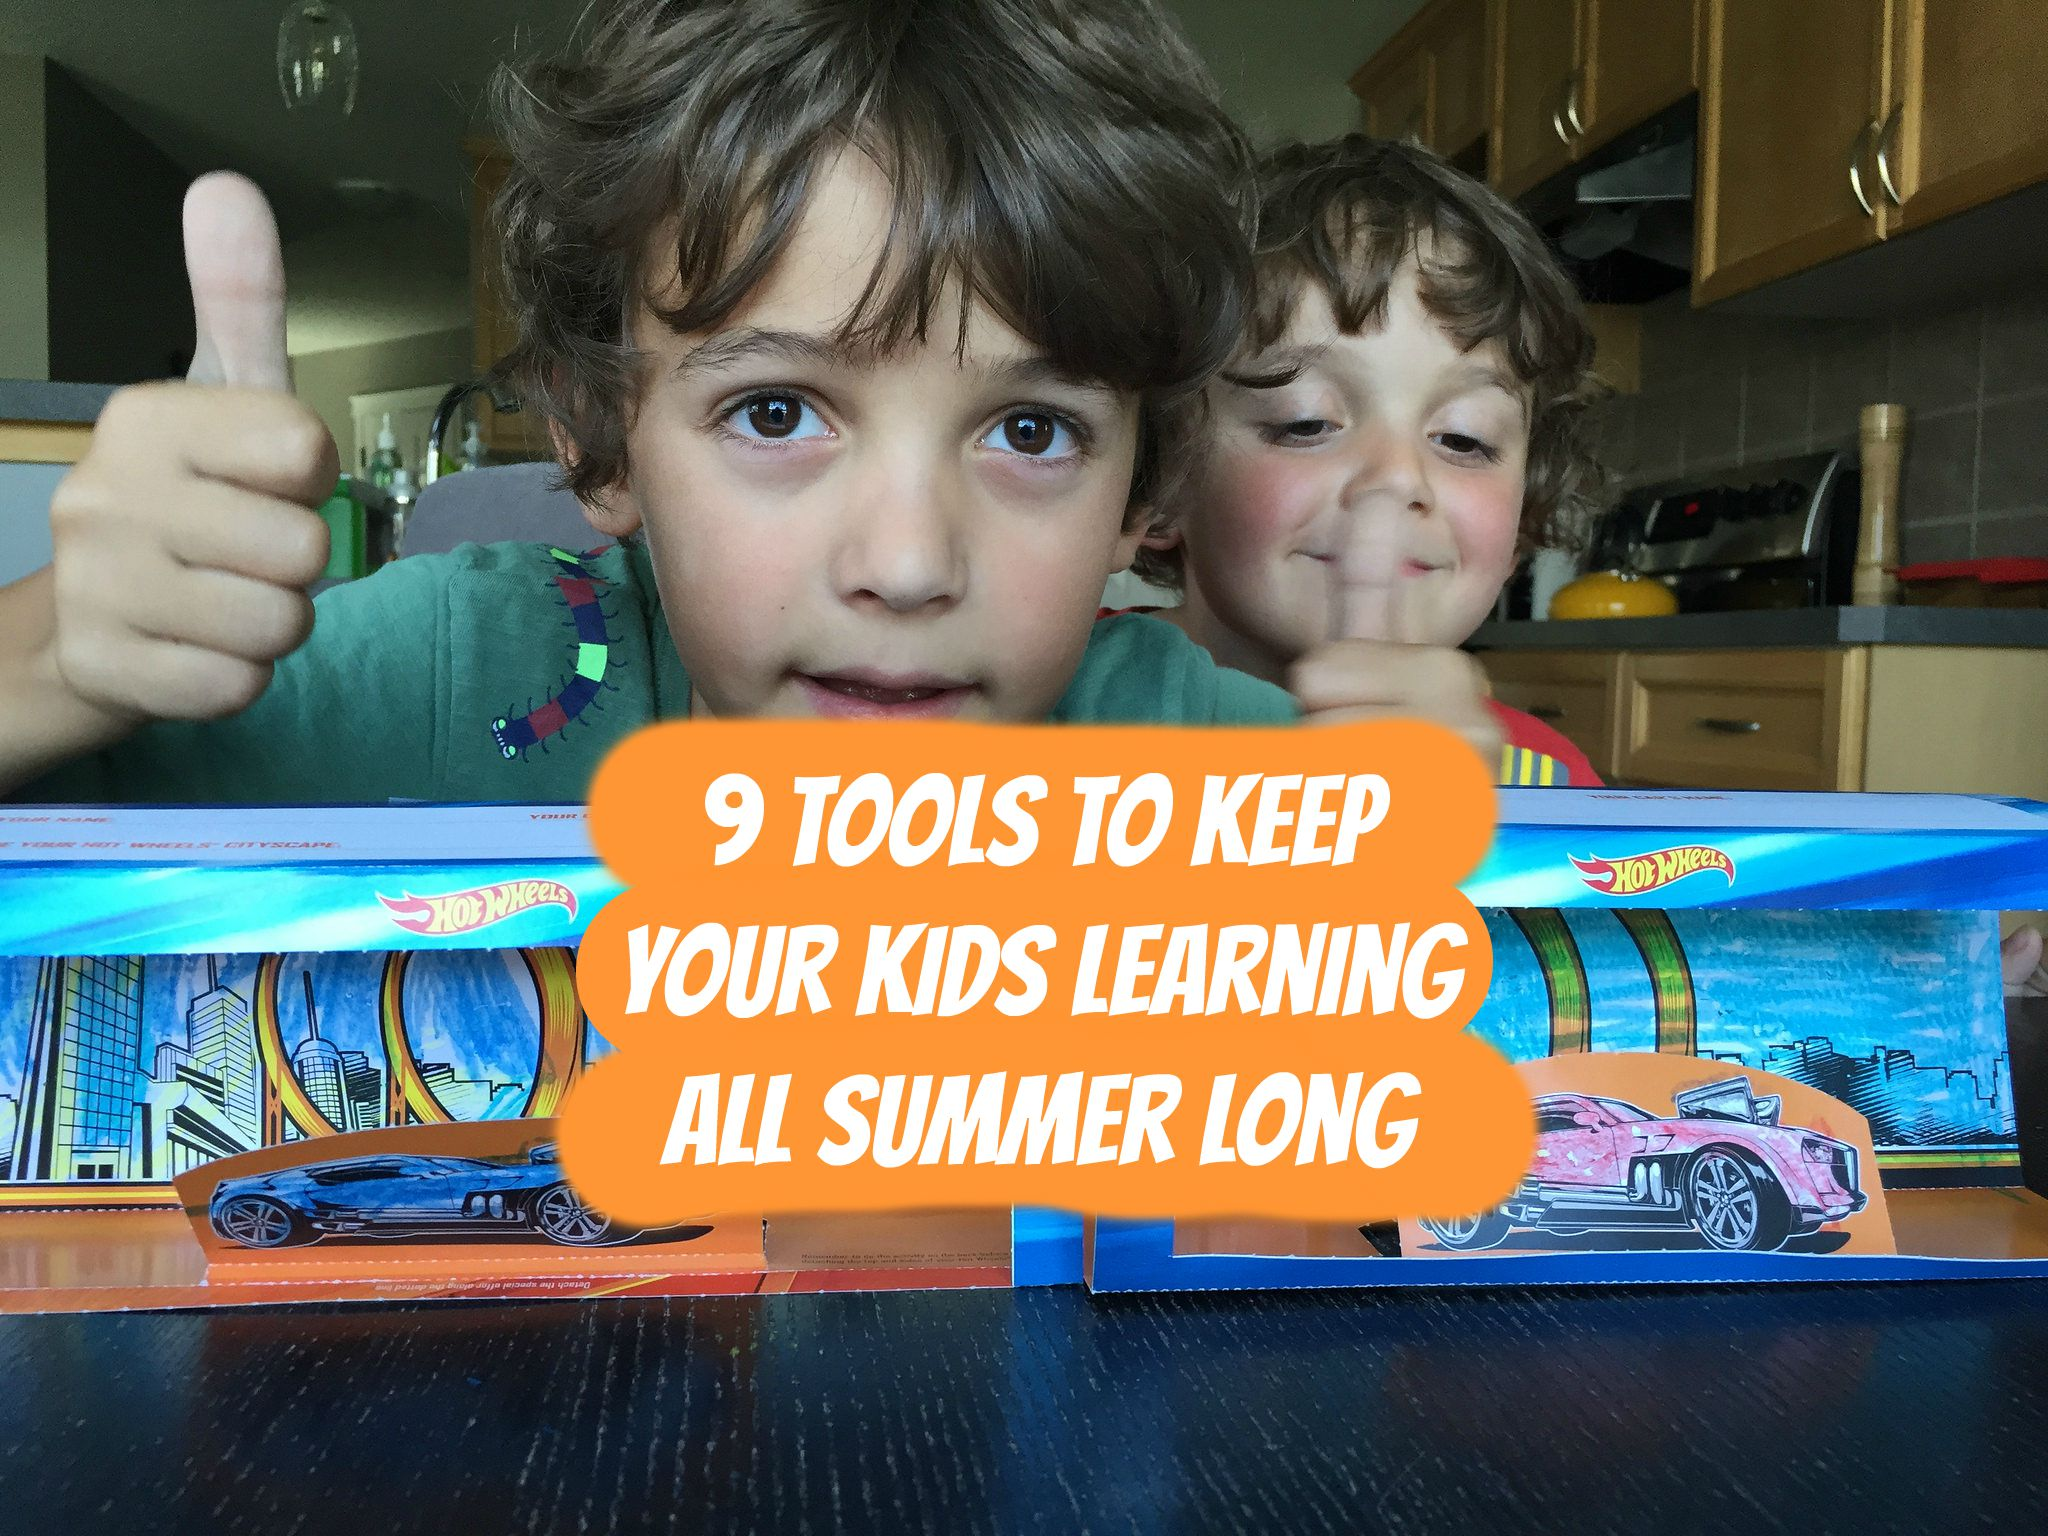 How To Keep Your Kids Learning All Summer Long